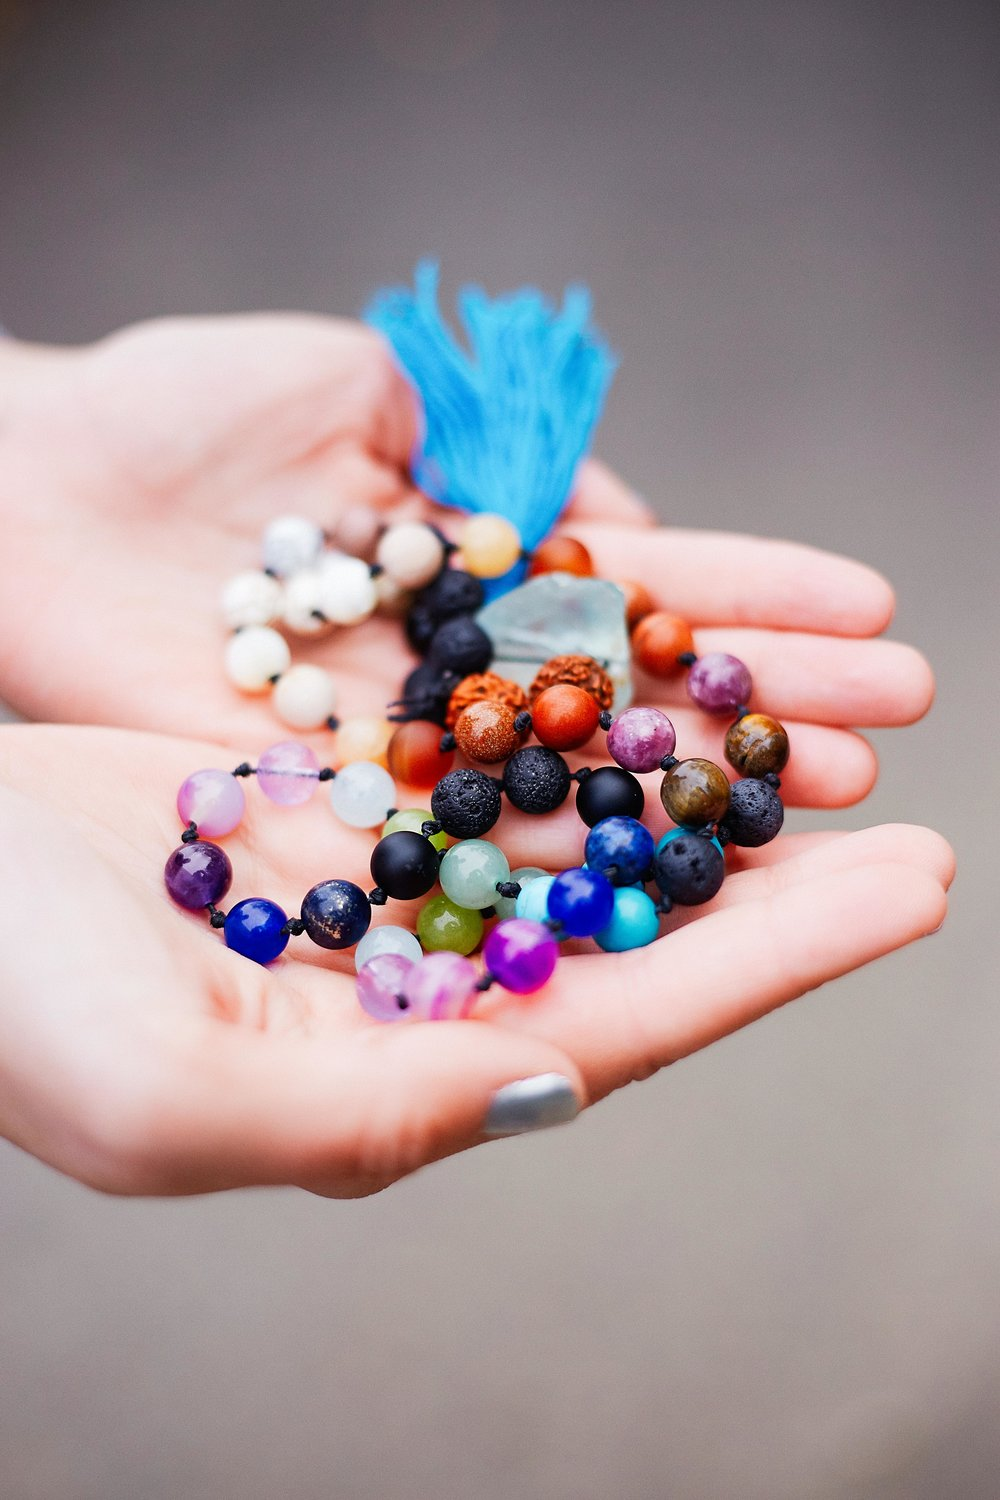 My mala beads given to me during Teacher Training and made by my teacher/friend/boss Sherri.